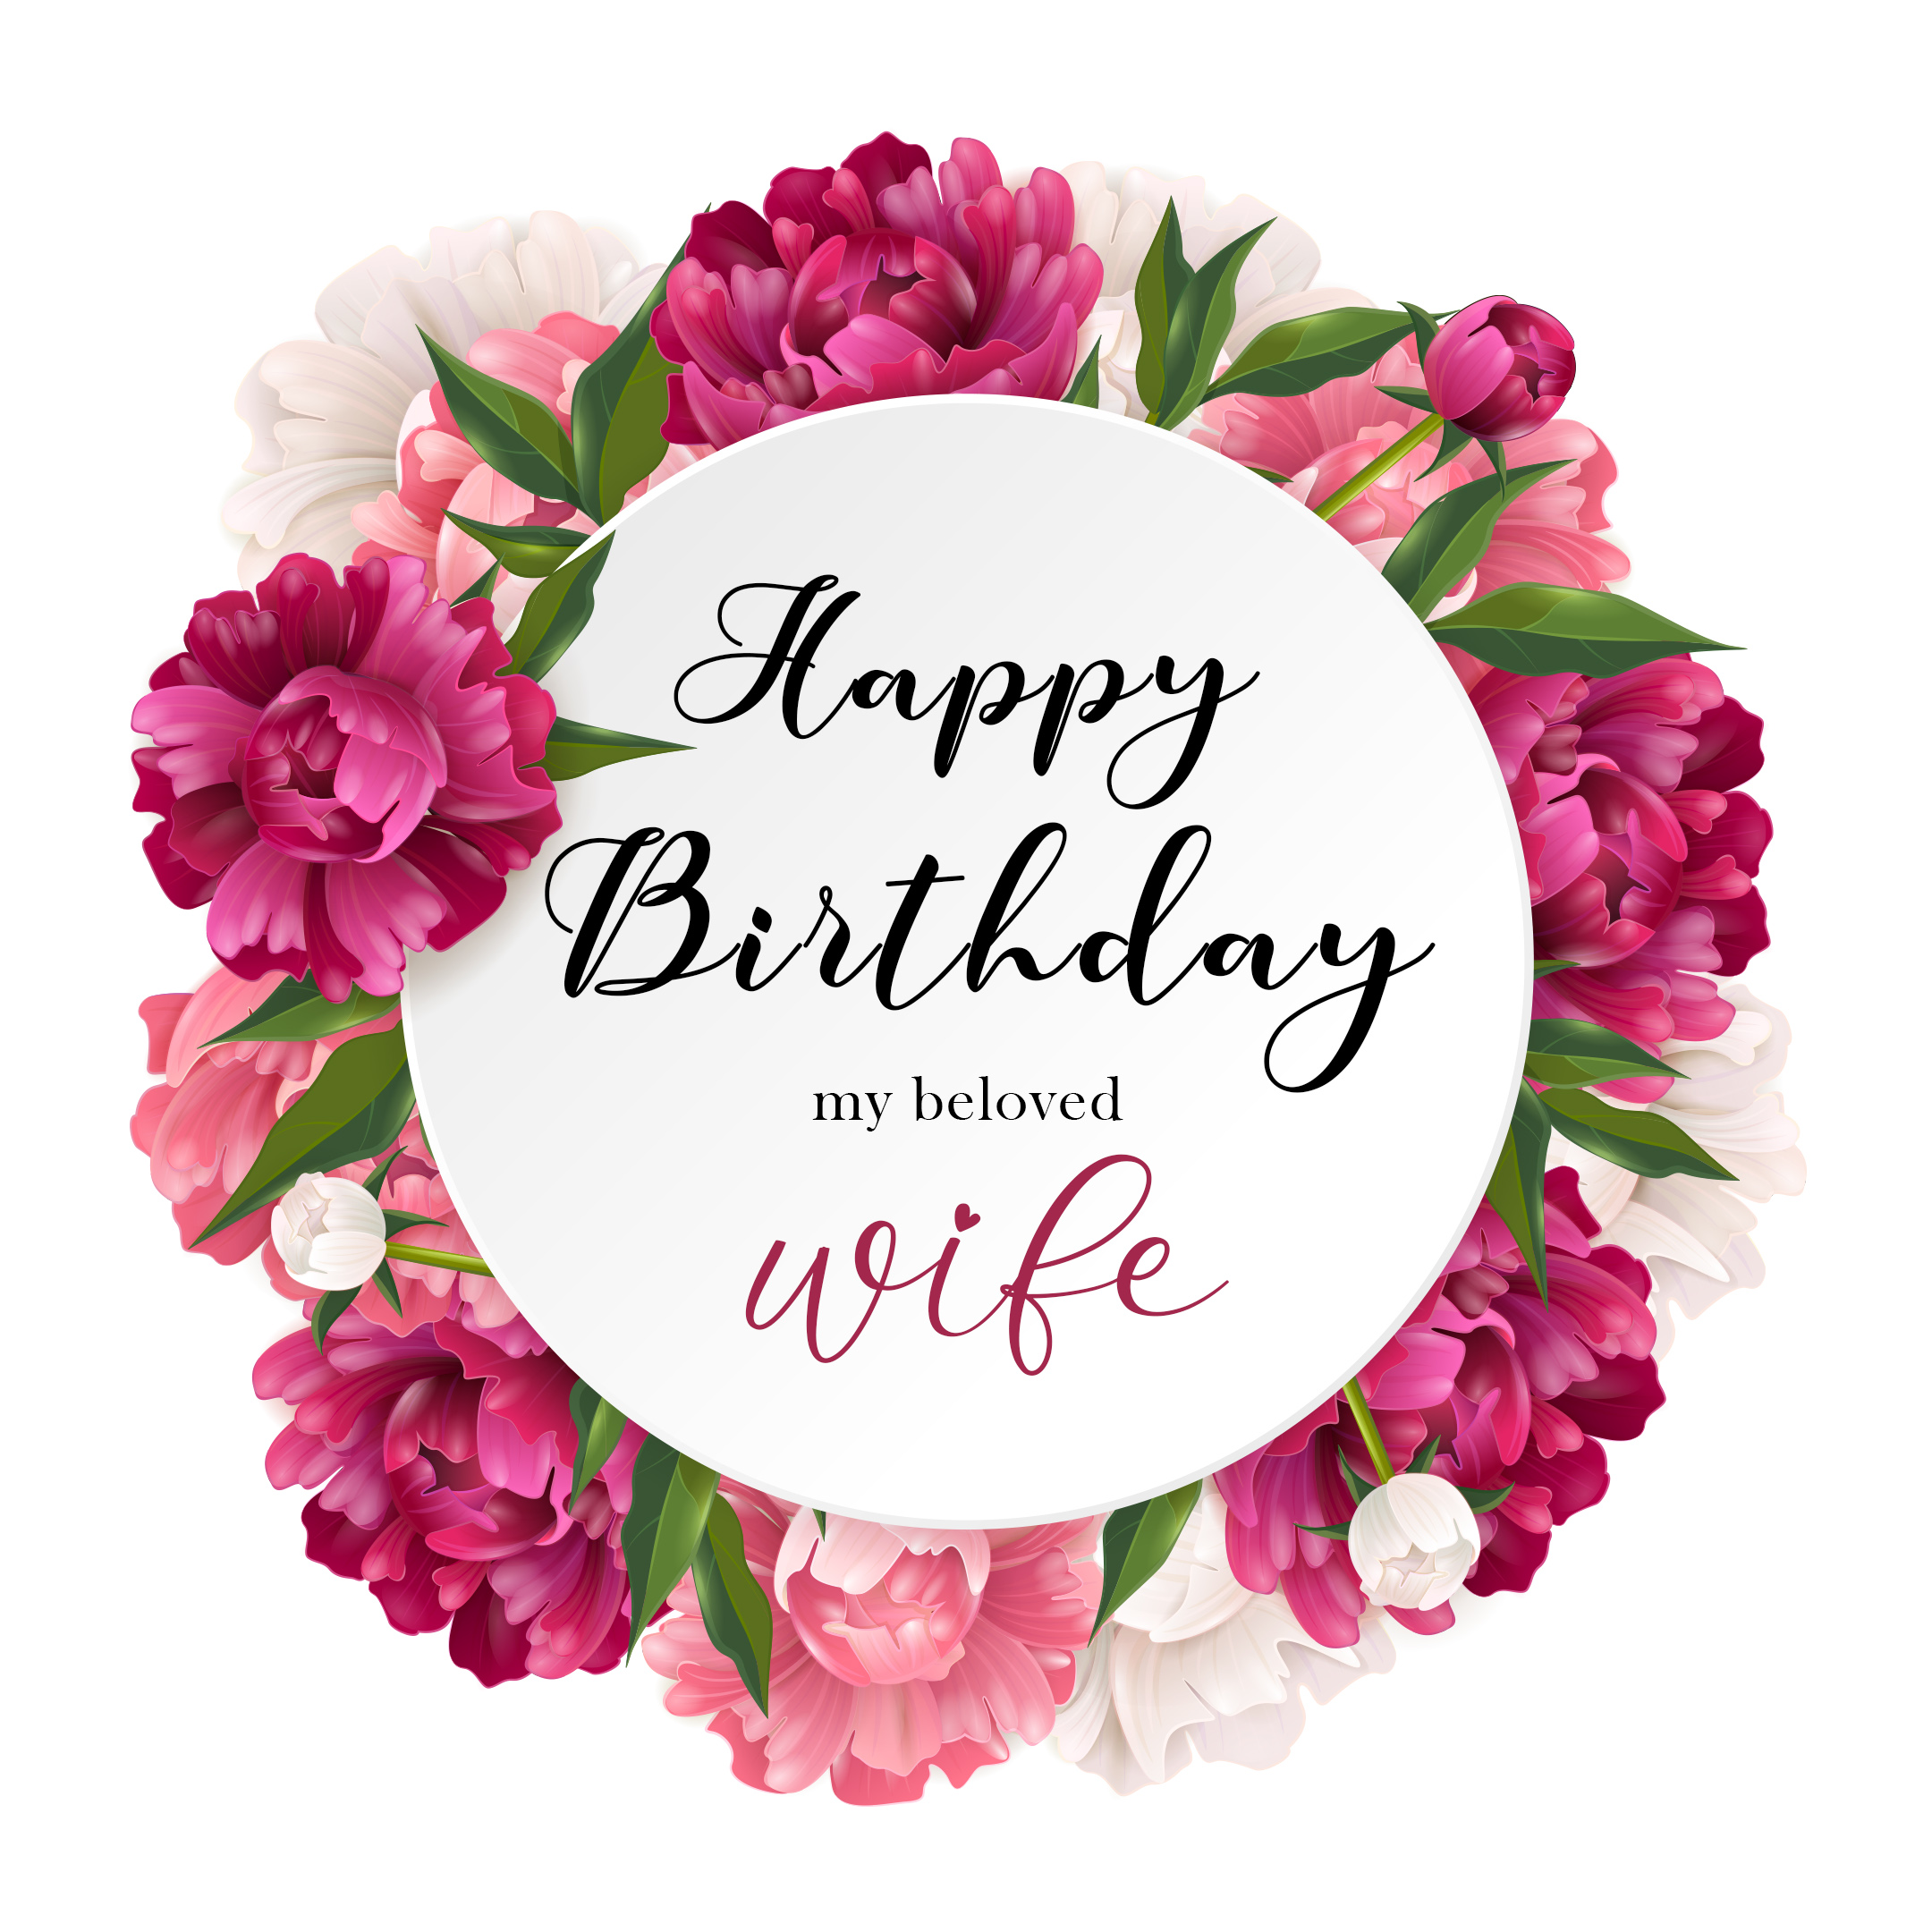 Free Happy Birthday Image For Wife With Pink Flowers - birthdayimg.com